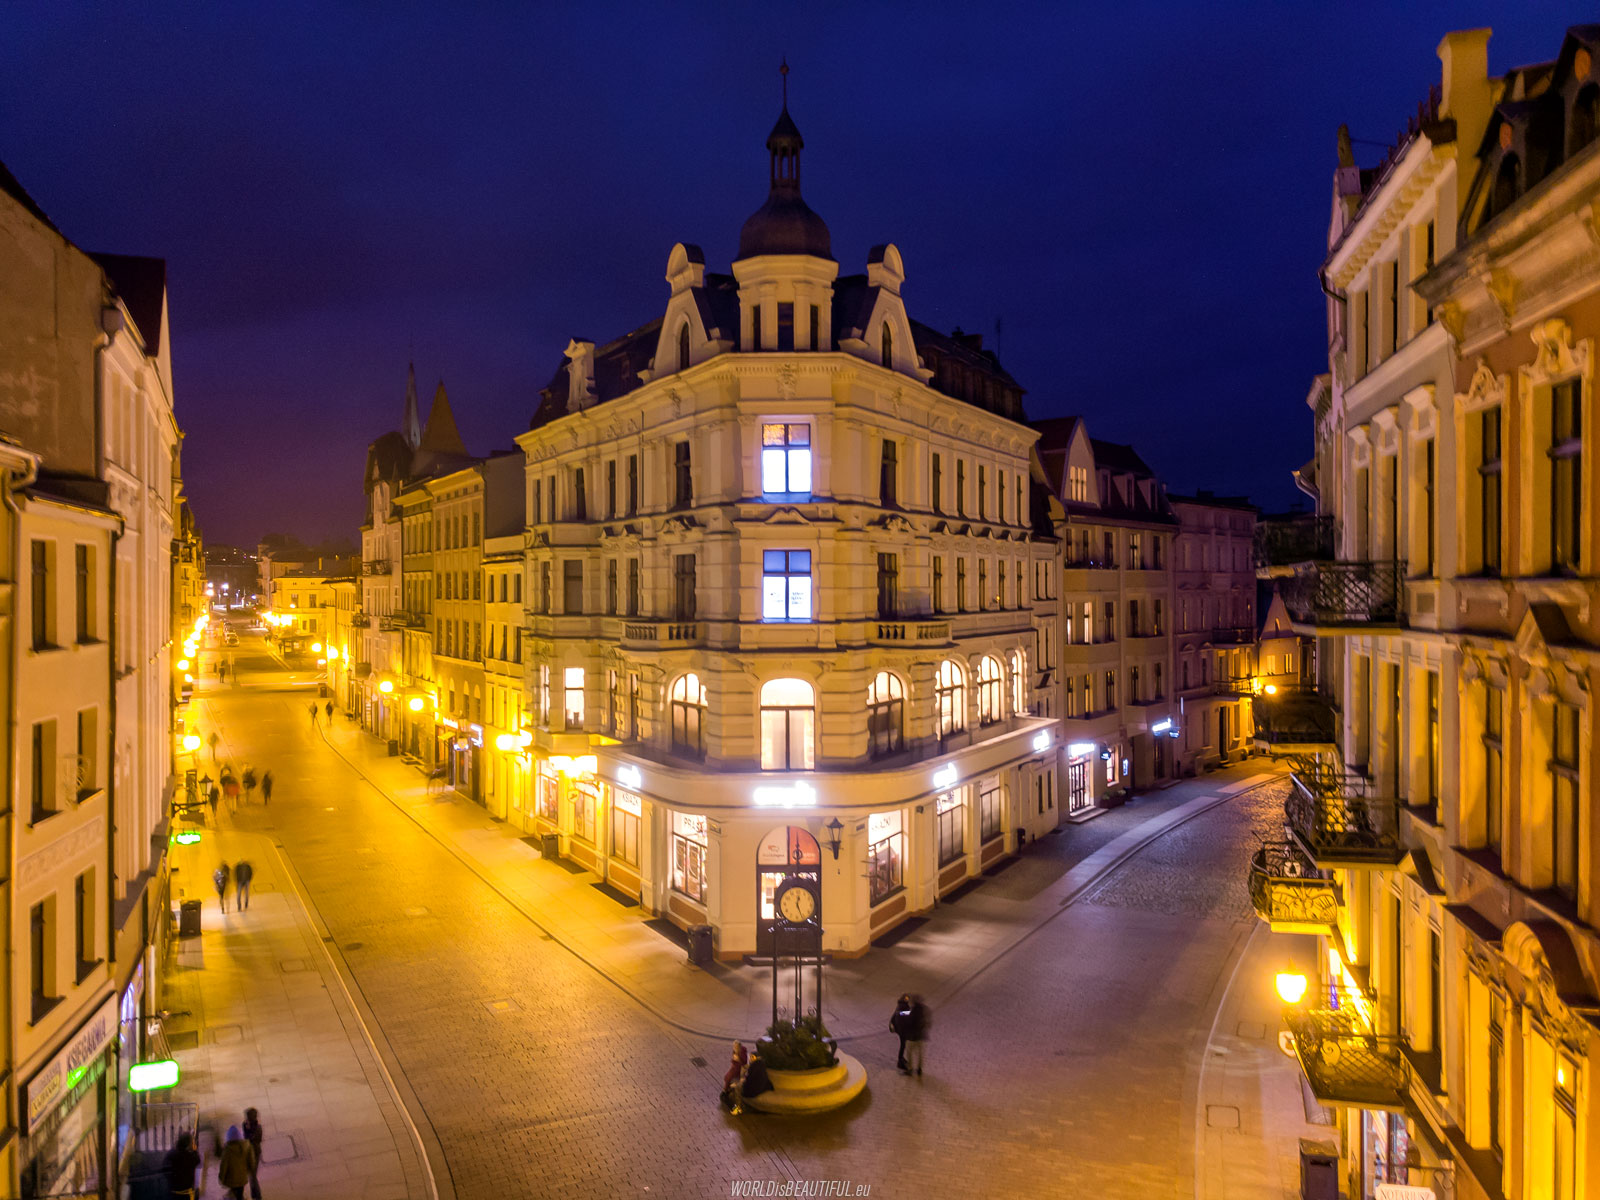 A night walk in the old town